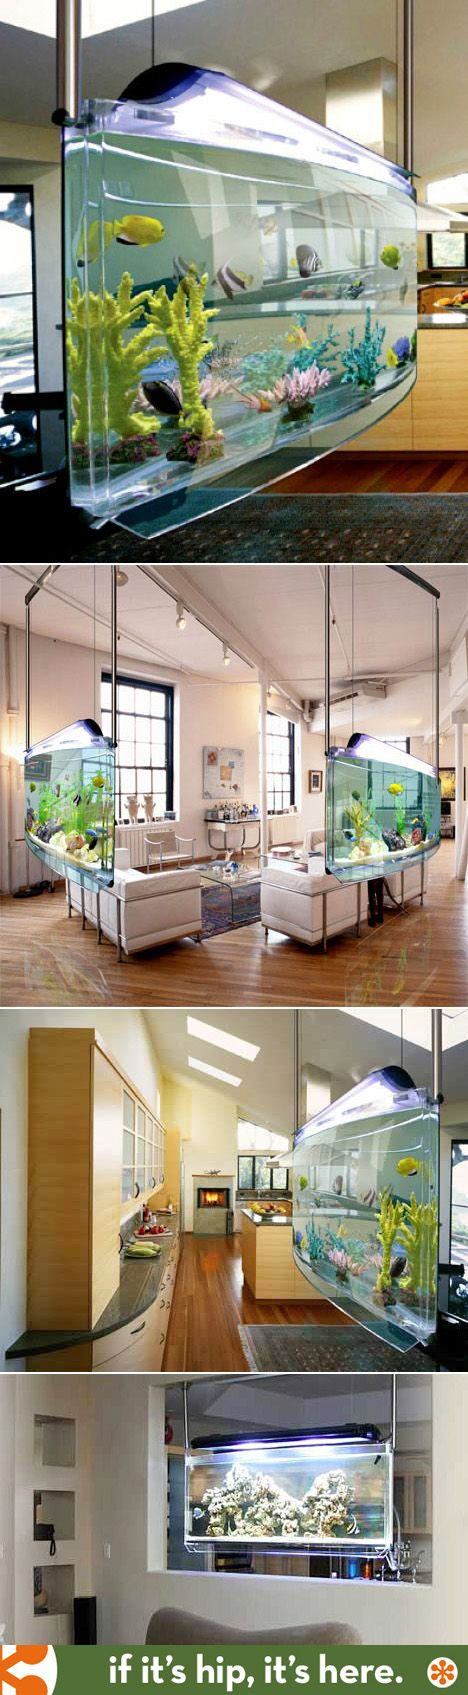 Fish tank in kitchen - The Spacearium A Wonderful Suspended Fish Tank Aquarium From Aquatic Perfection